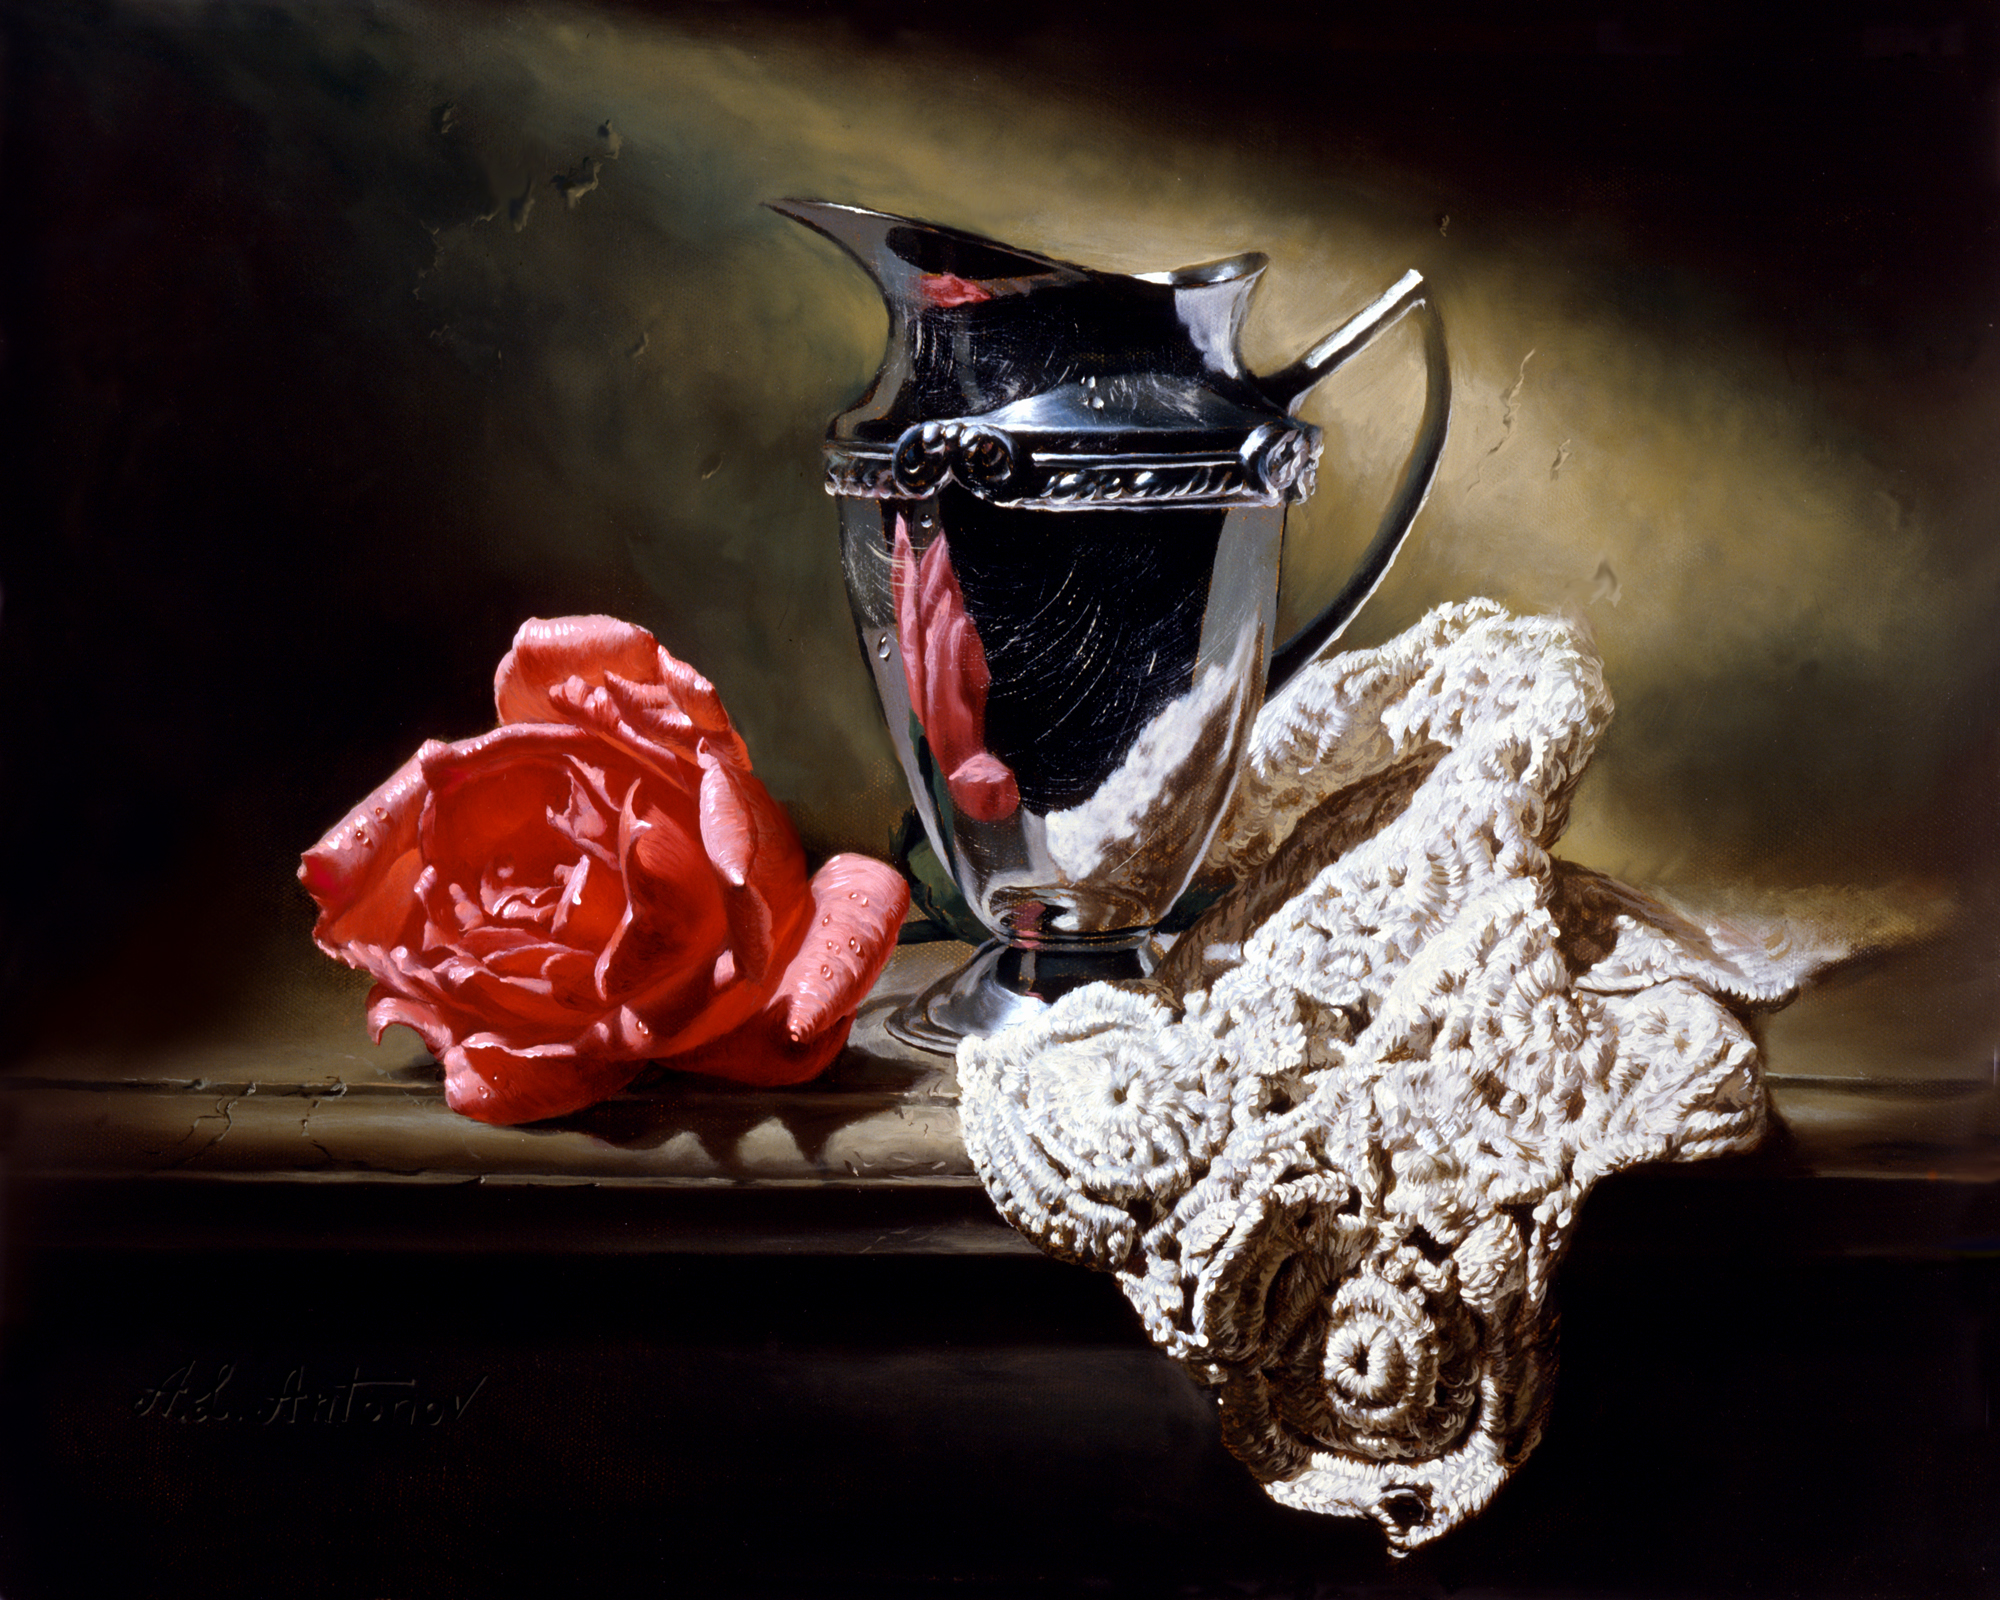 still_life_with_lace_16x20.jpg